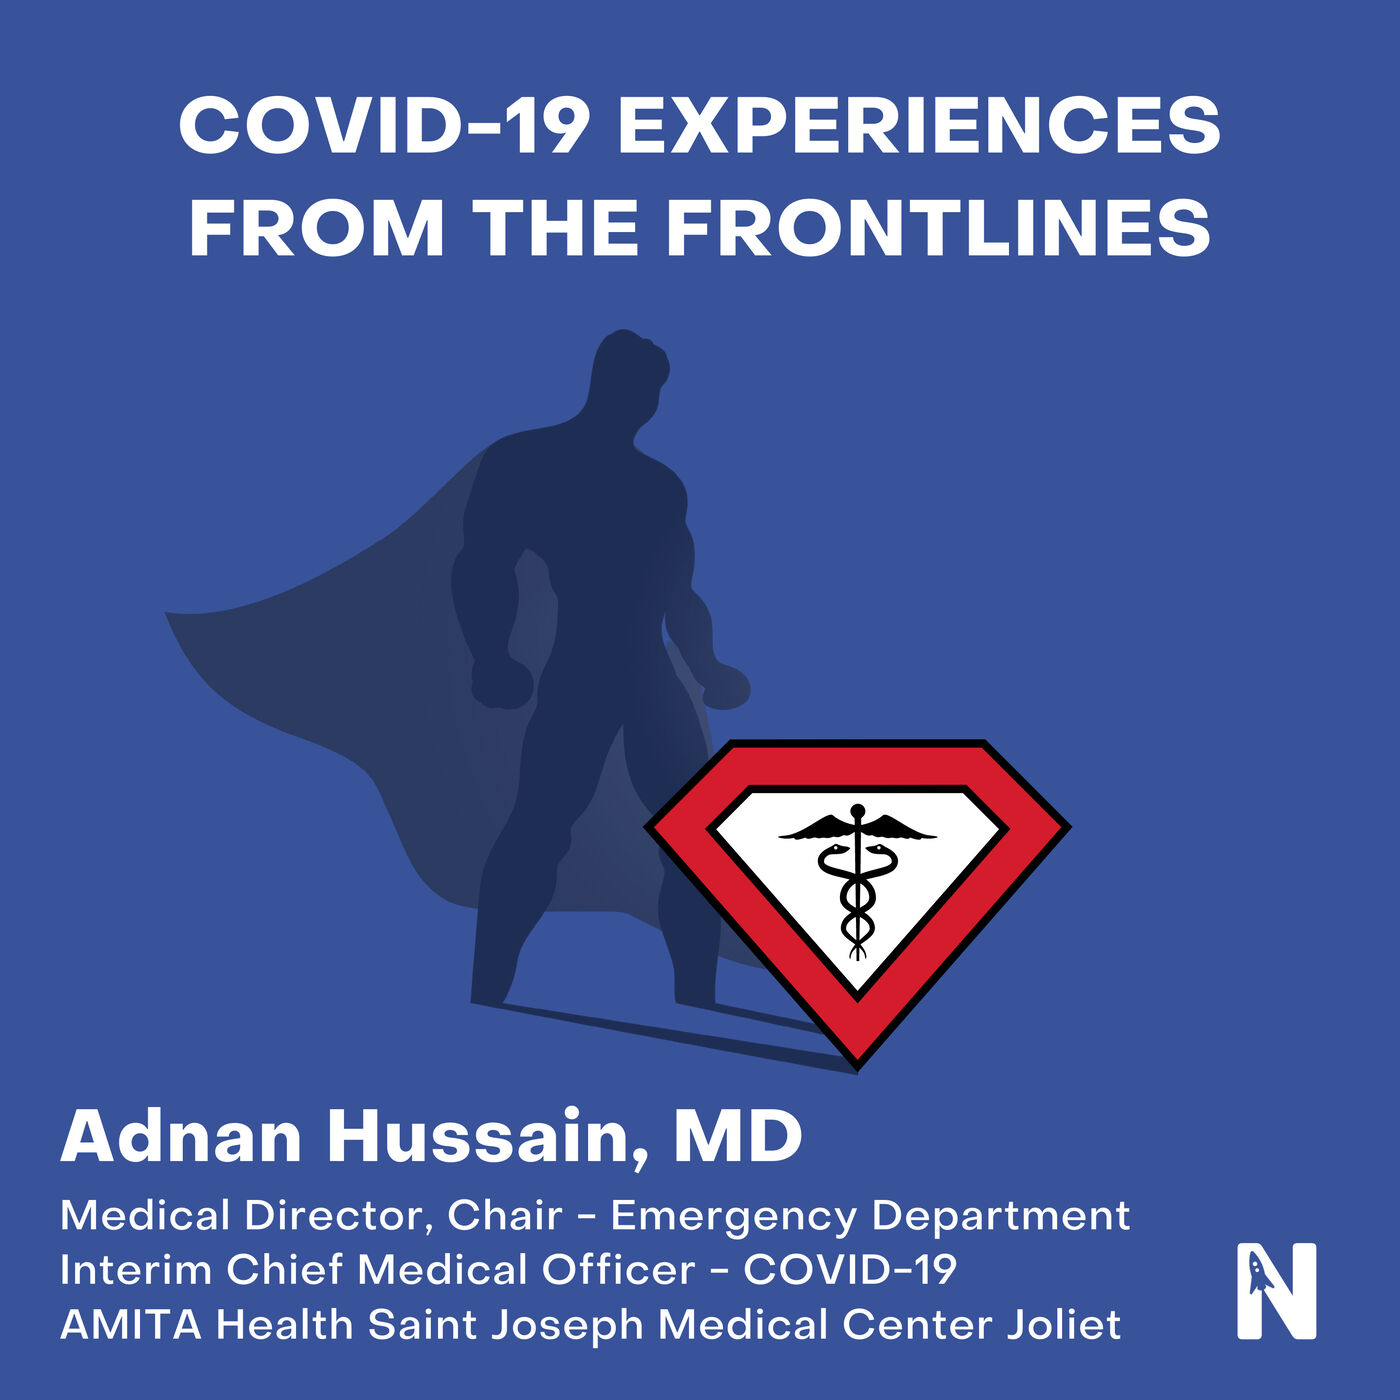 COVID-19 Experiences From the Frontlines   Adnan Hussain